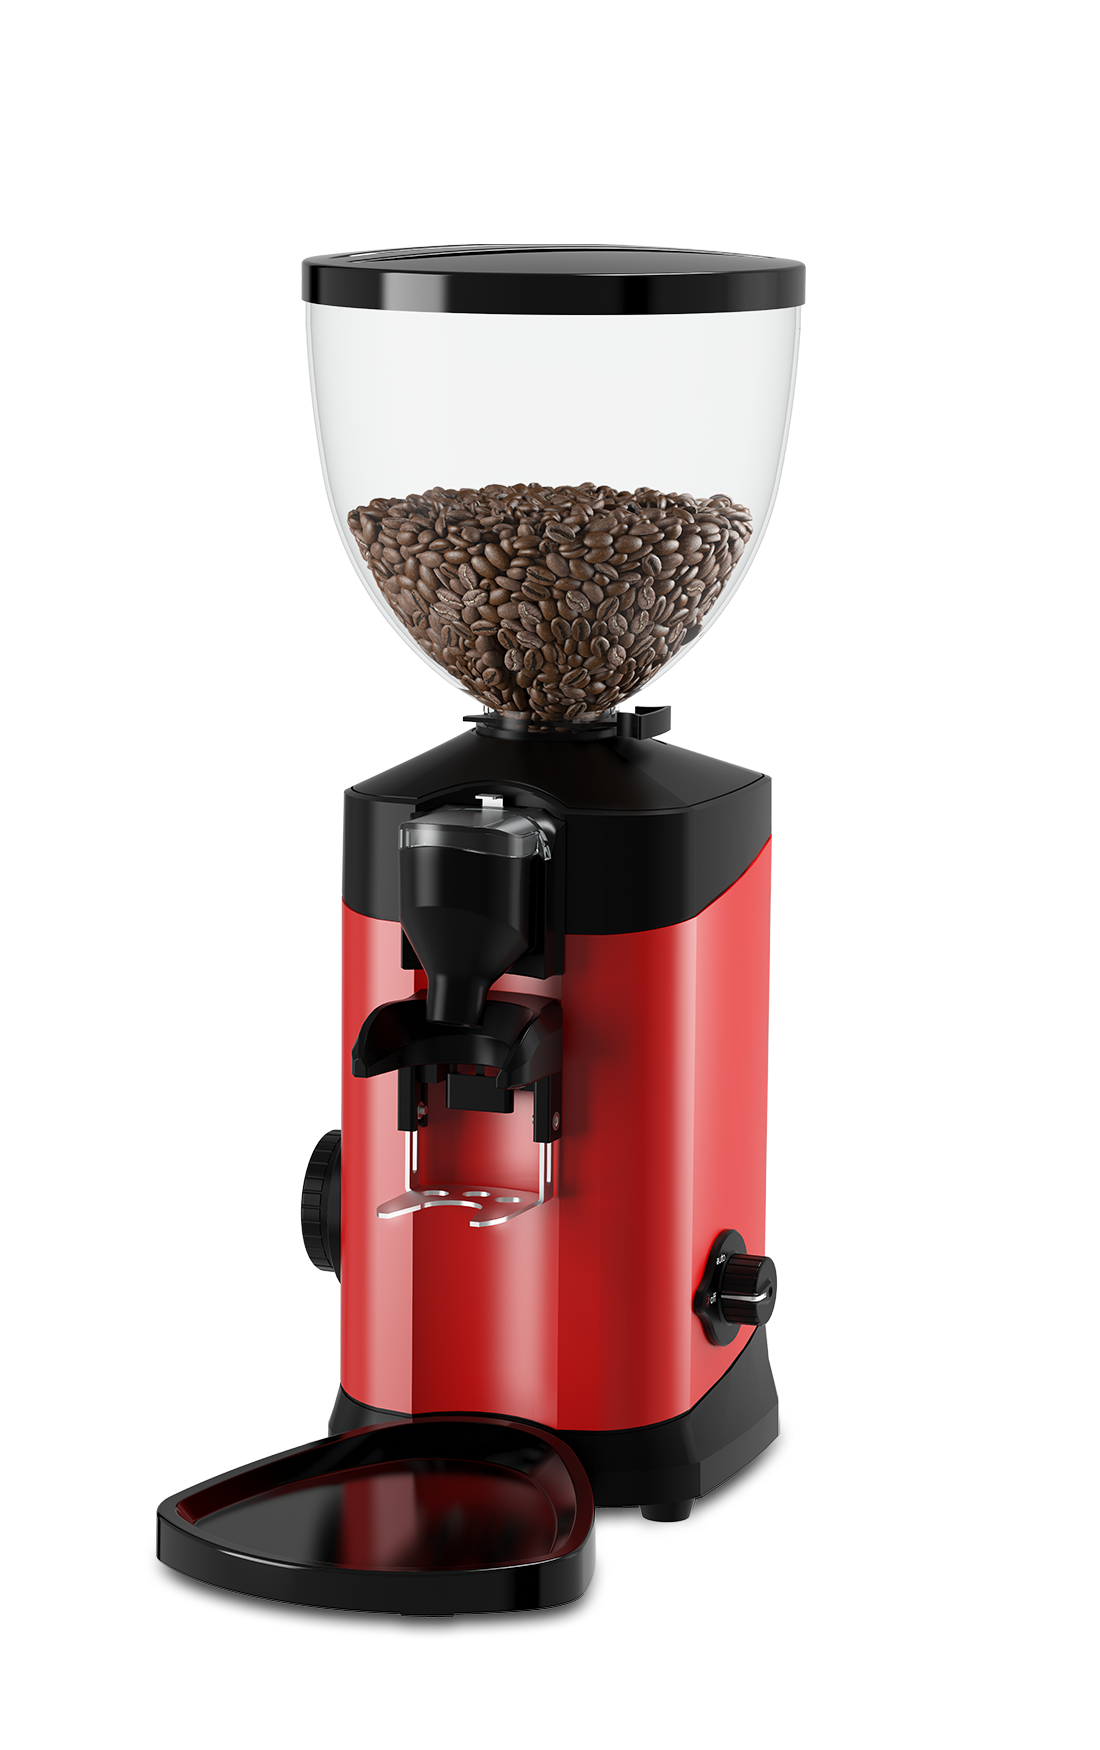 HeyCafe TITAN I Ver 2.0 ODG V1 / V3 on demand espresso grinder